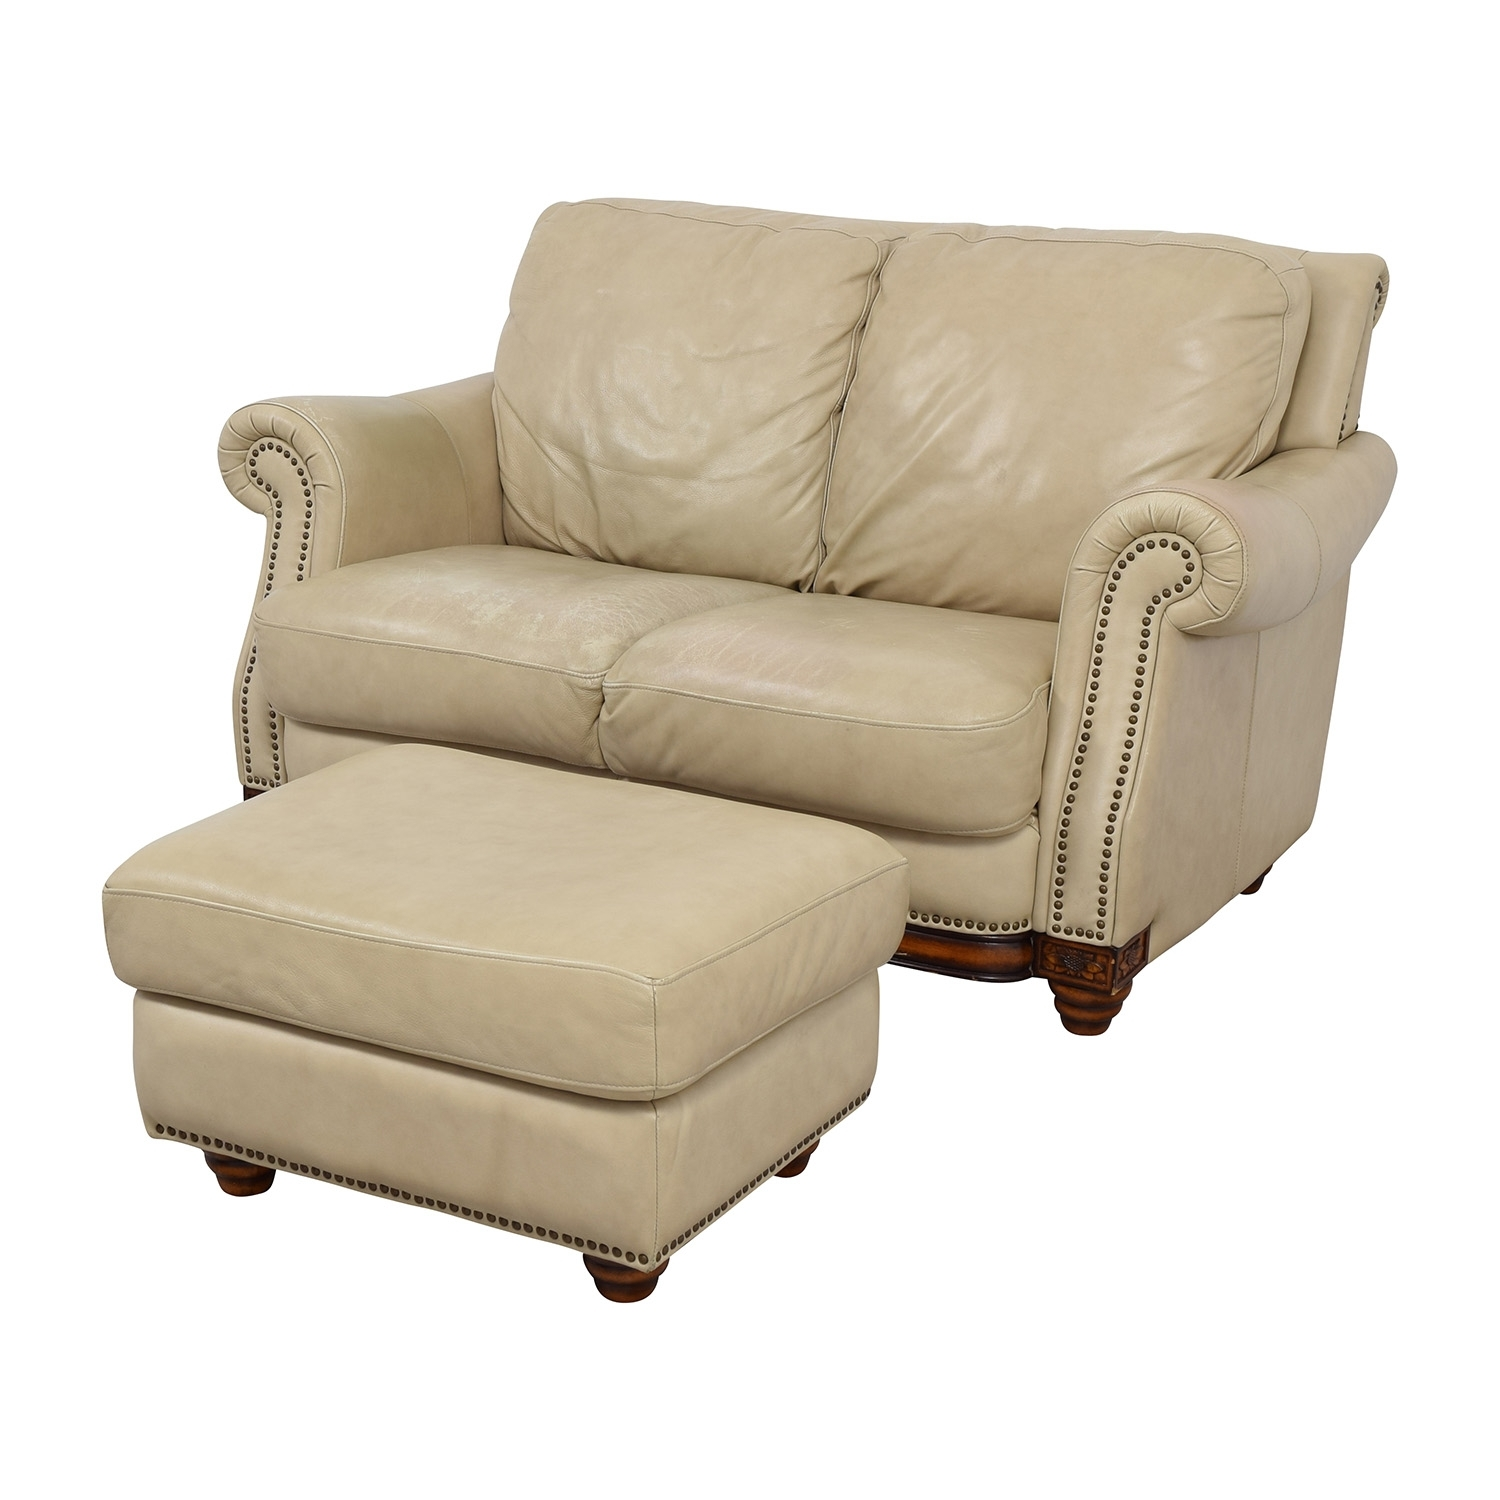 74% Off - Raymour & Flanigan Raymour & Flanigan Studded Tan Leather for Loveseats With Ottoman (Image 5 of 15)